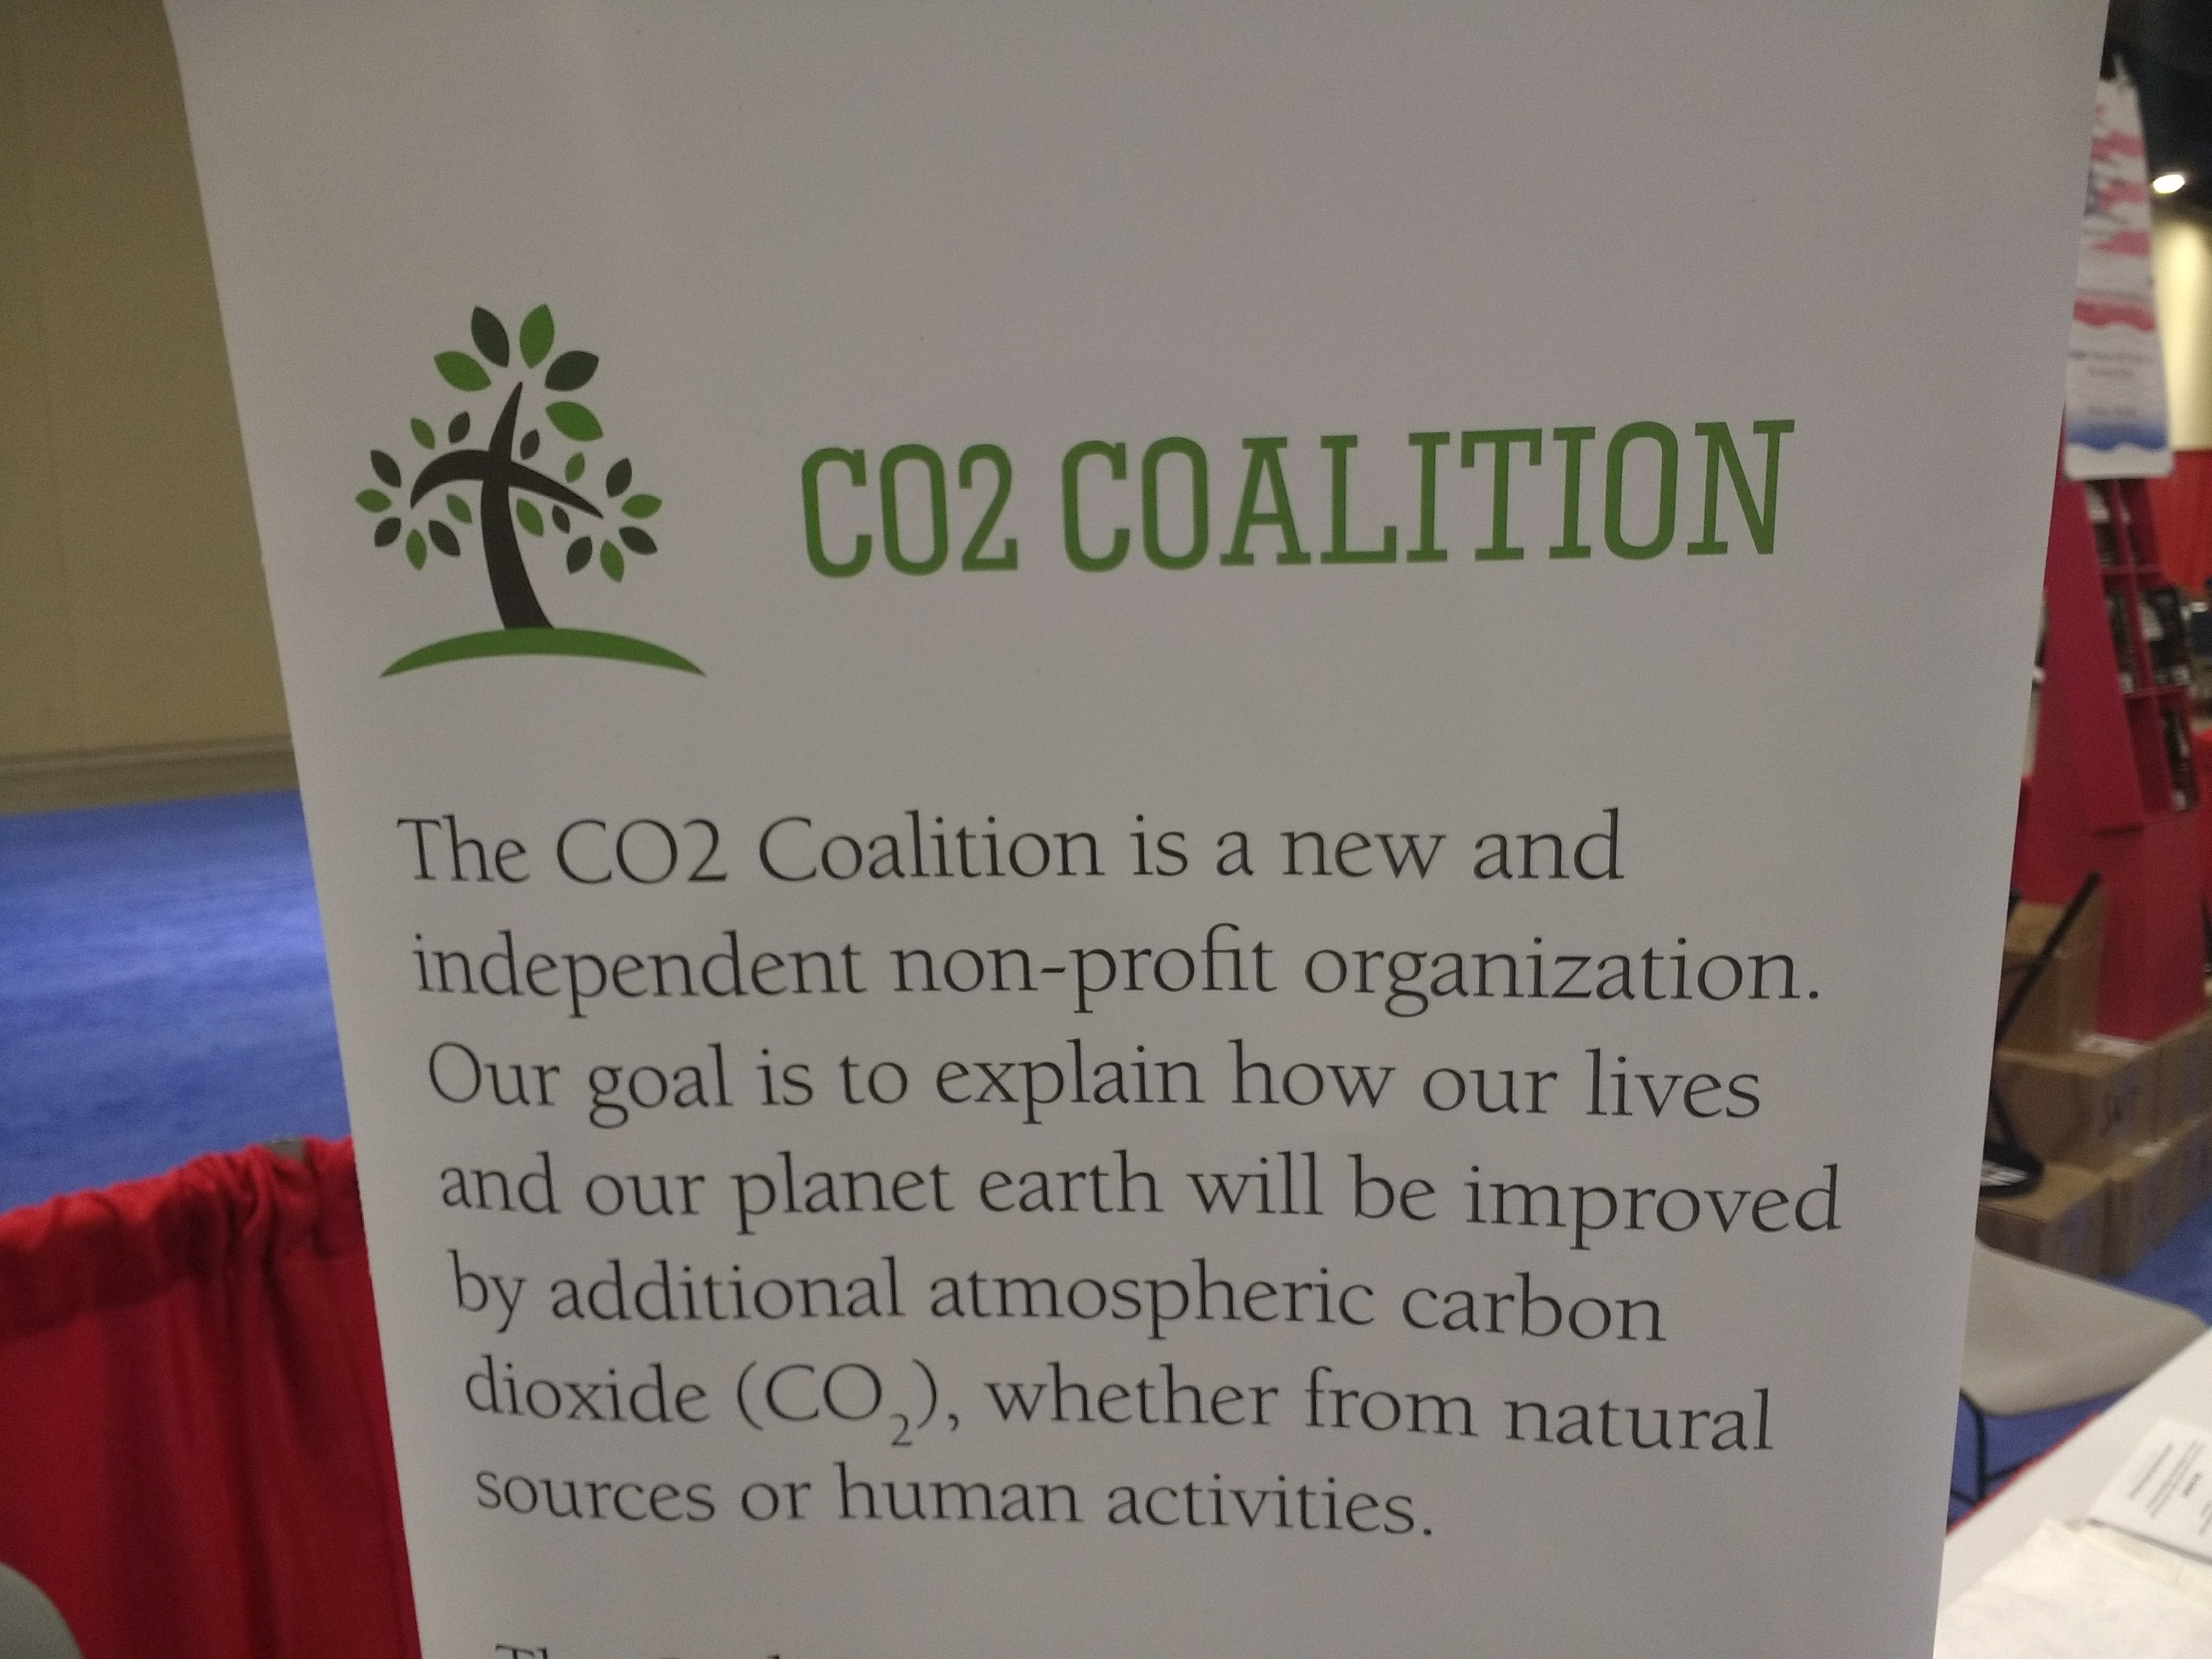 The CO2 Coalition is a nonprofit founded in 2015 to promote the benefits of increasing carbon emissions.